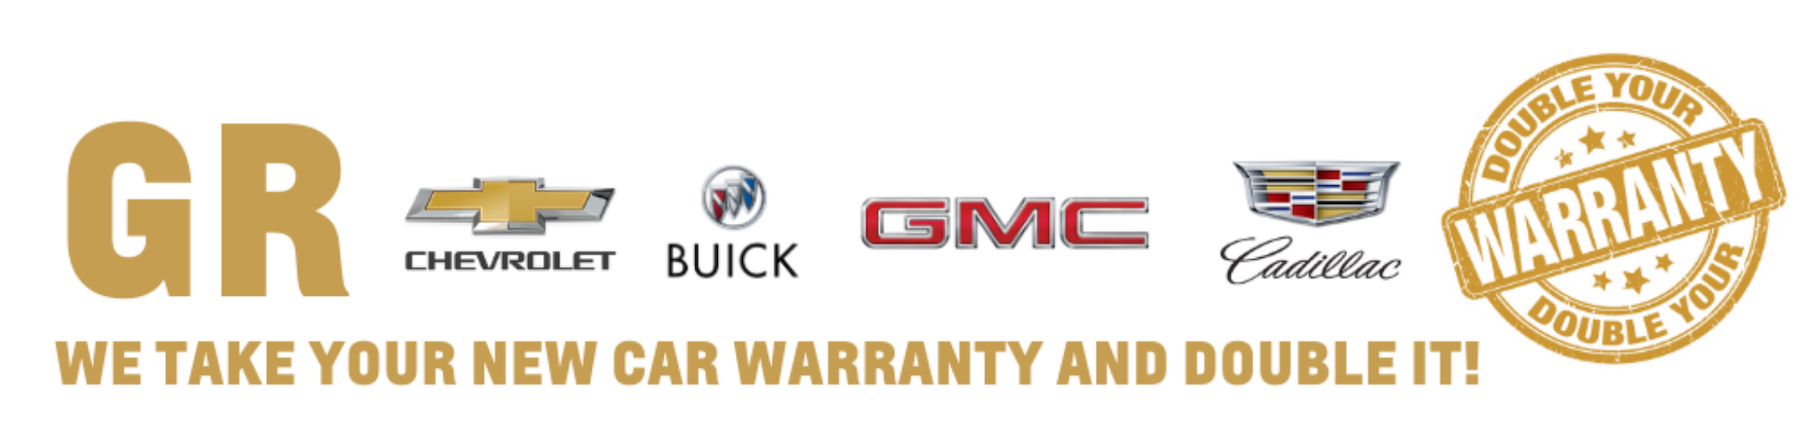 GR Chevrolet Double Your Warranty